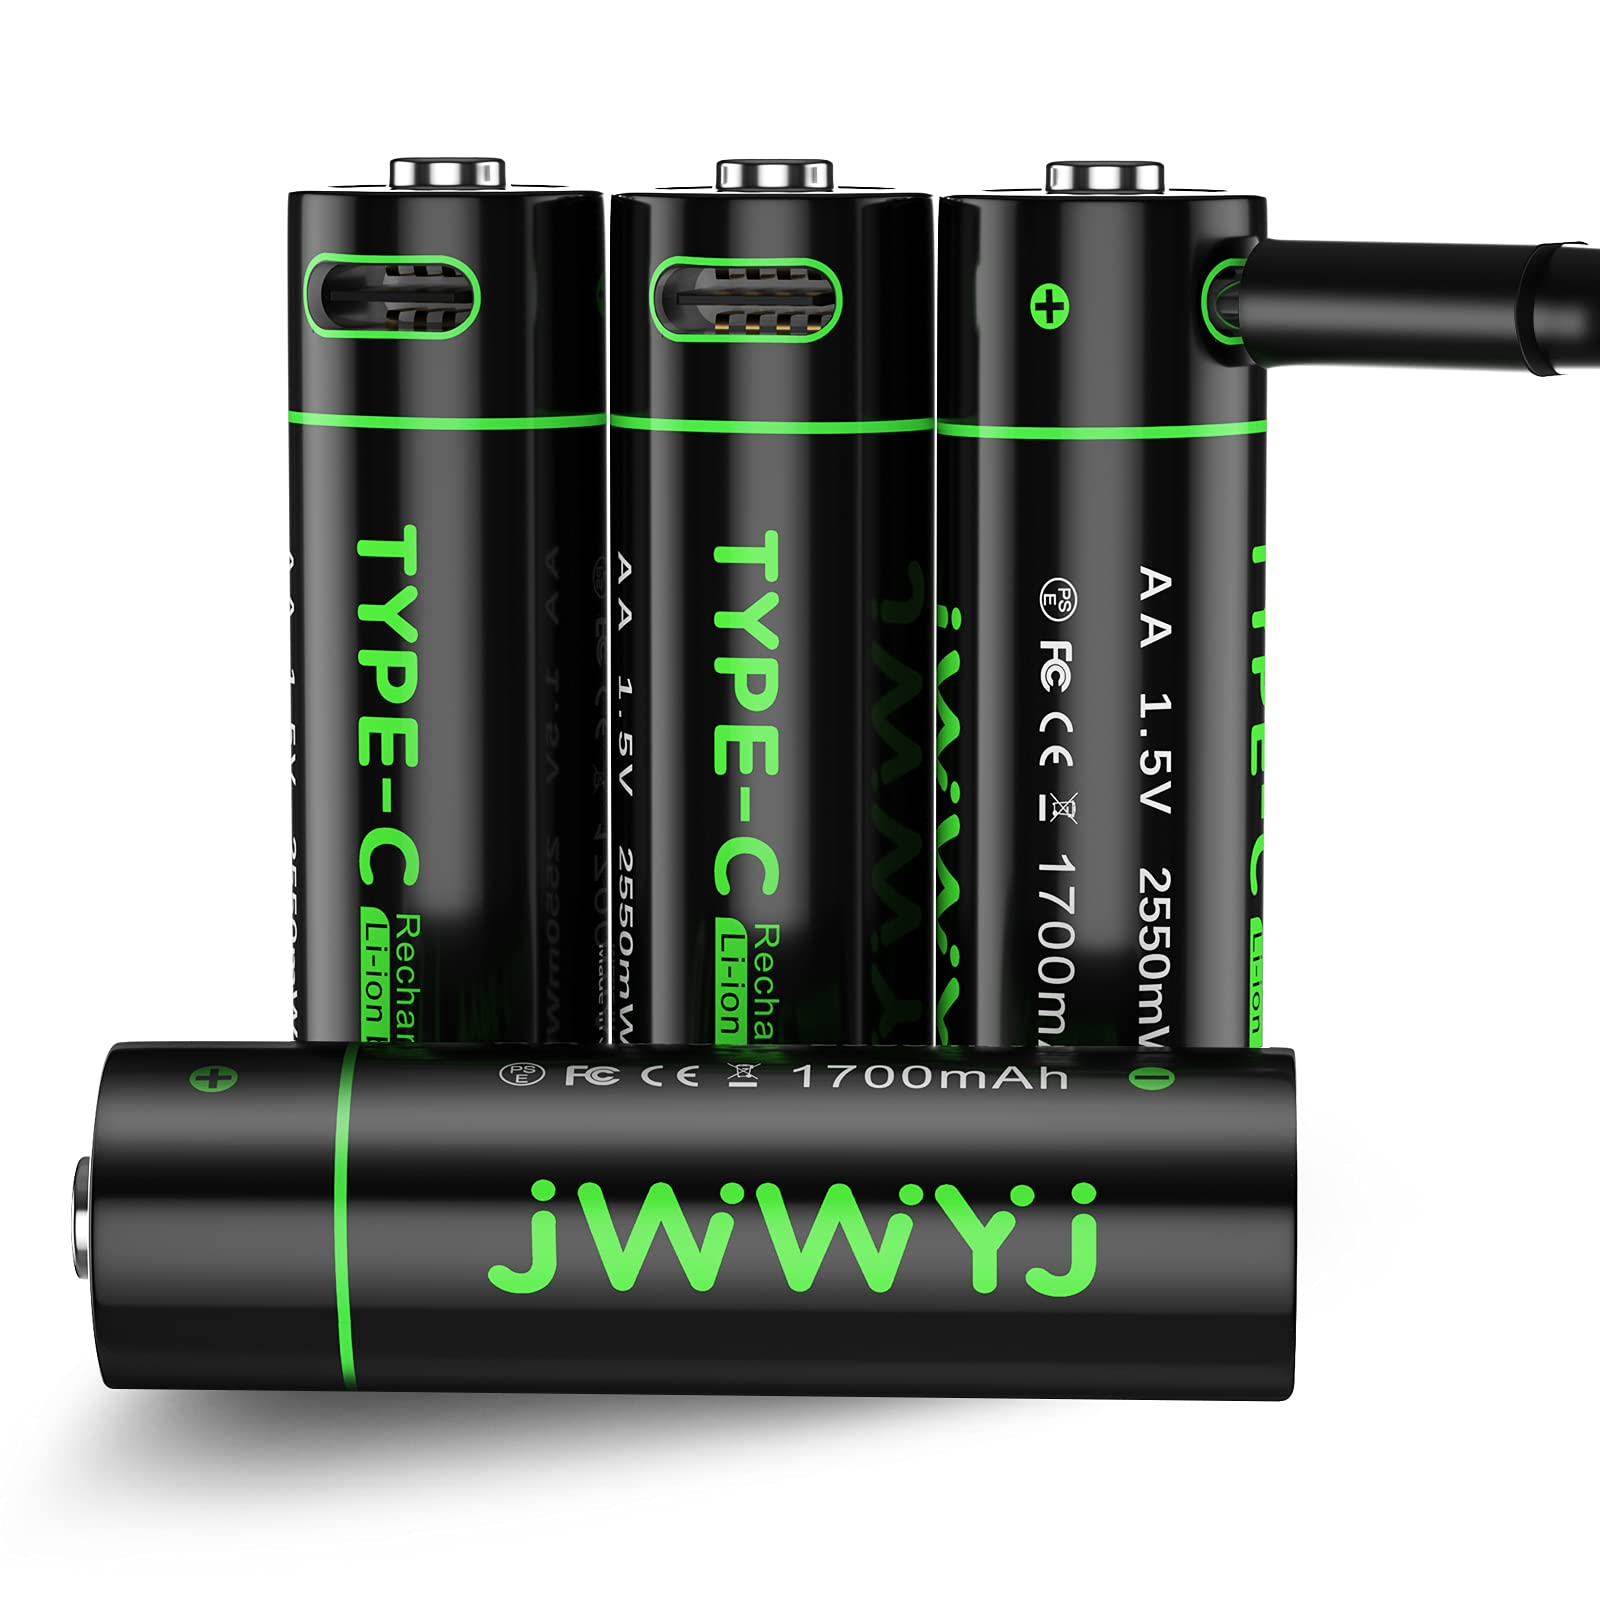 AA Lithium Rechargeable Batteries – 4Pack Smart Rechargeable AA Batteries by JWWYJLithium